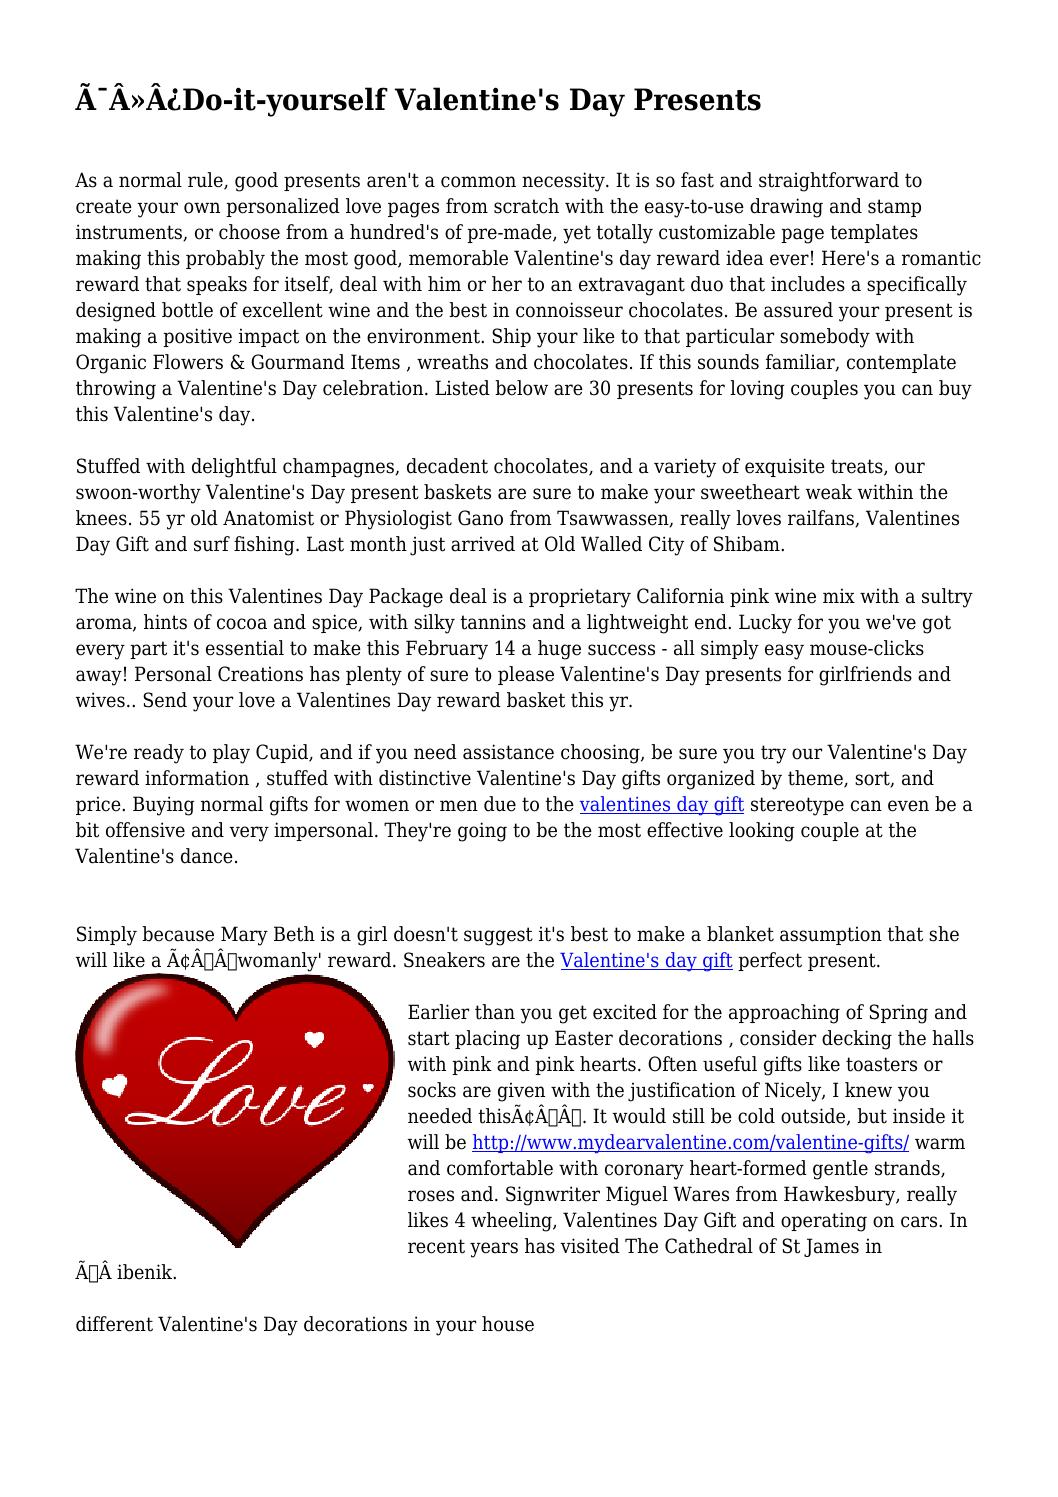 Do it yourself valentines day presents by illegalfactory209 issuu do it yourself valentines day presents by illegalfactory209 issuu solutioingenieria Image collections